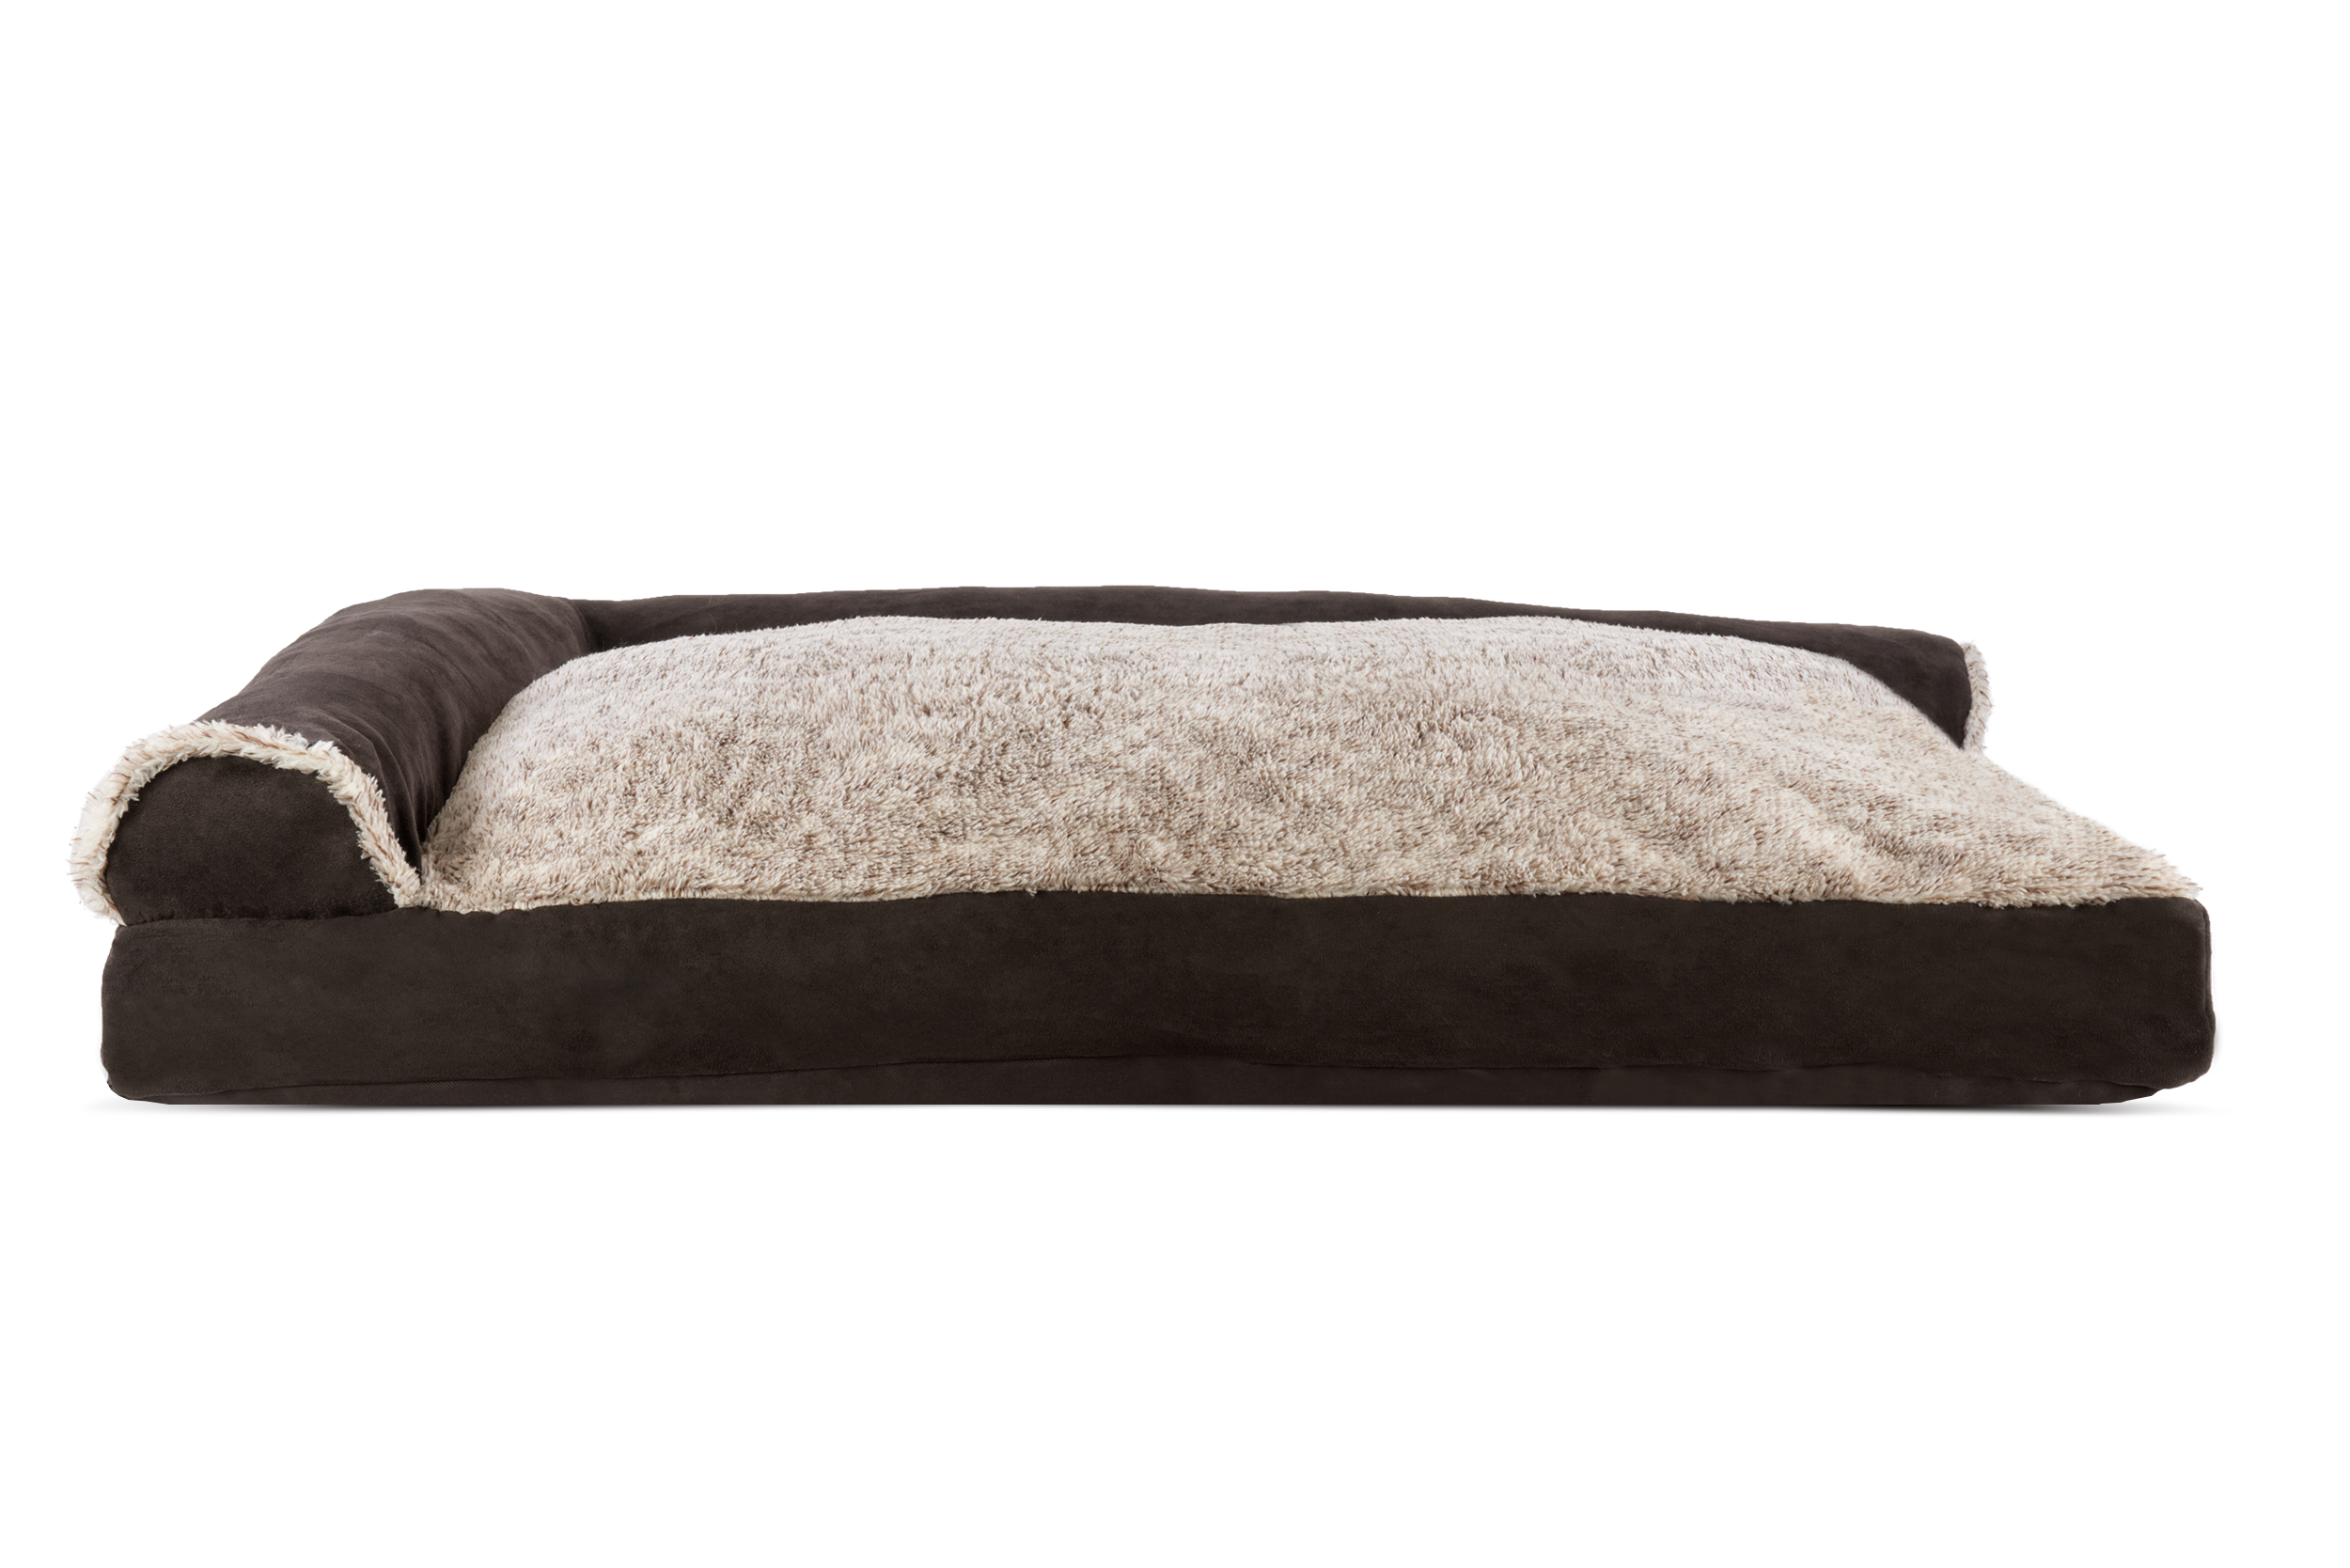 Two Tone Faux Fur Amp Suede Deluxe Chaise Lounge Pillow Sofa